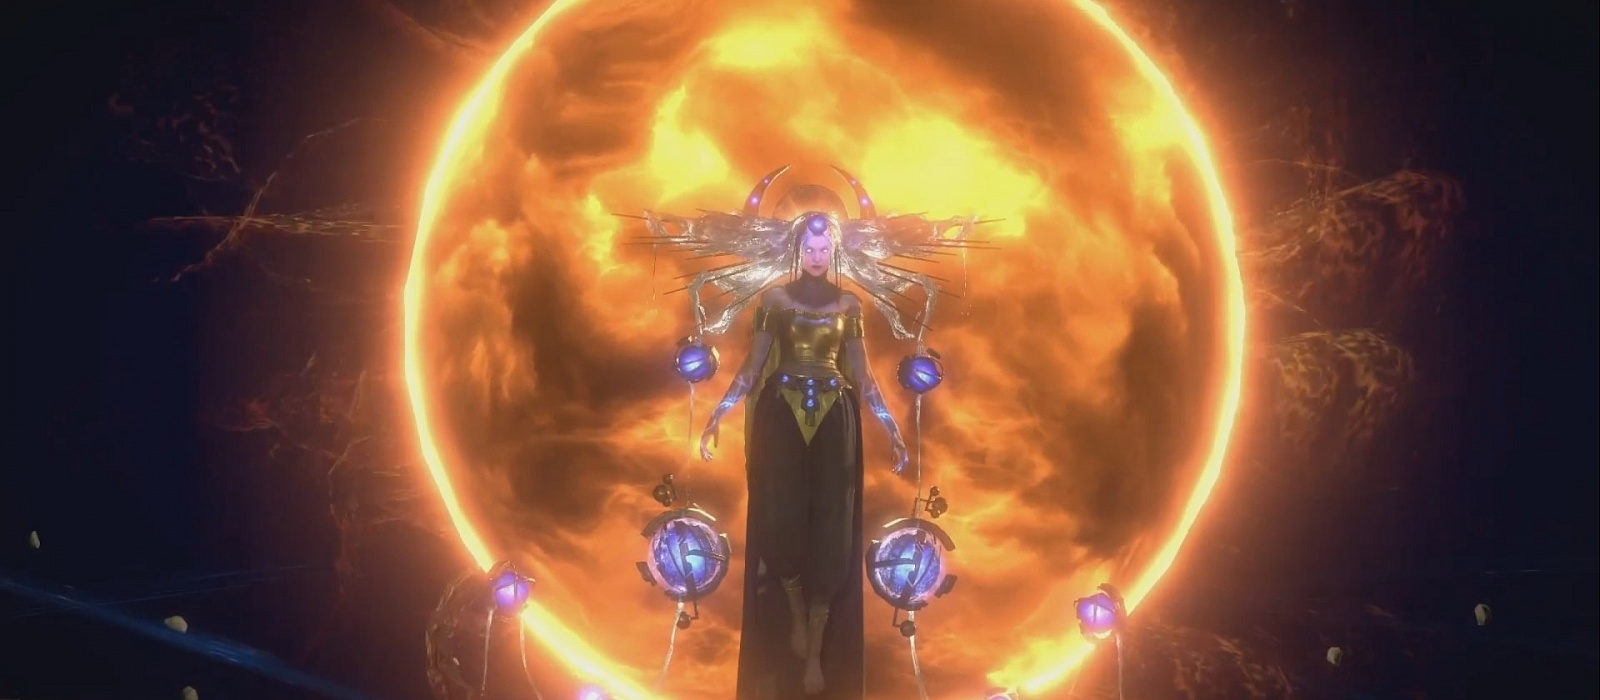 How to unlock new passive skills in Path of Exile from the Echoes of the Atlas expansion. What skills are available in the new skill trees